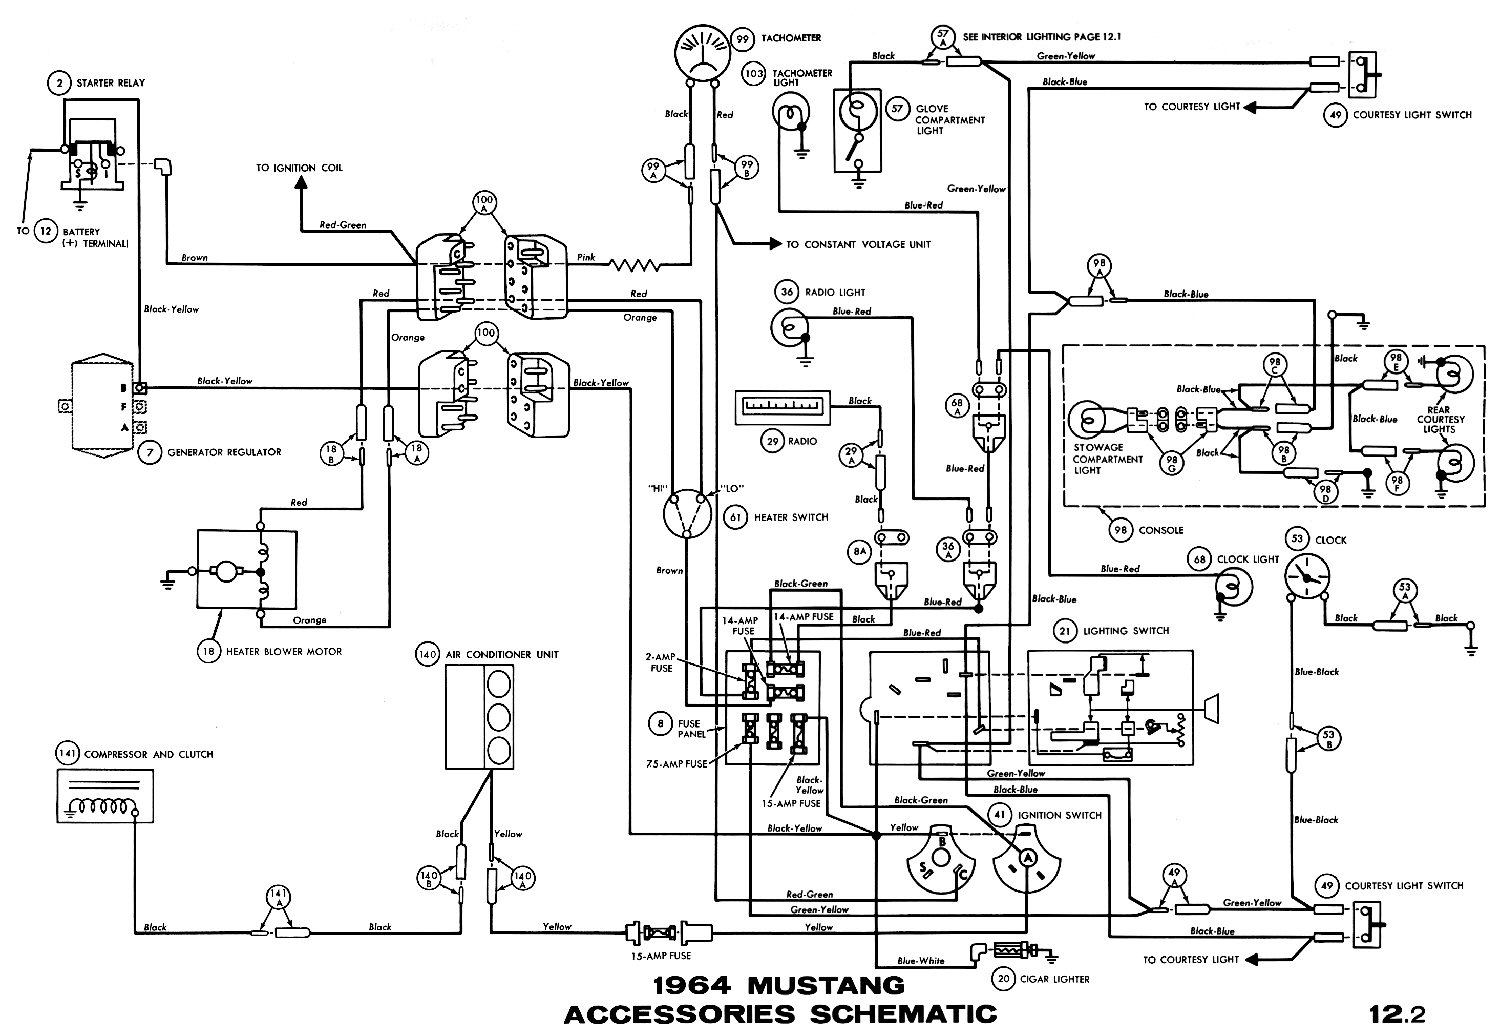 1964m 69 mustang wiring diagram 1969 ford f100 wiring diagram \u2022 wiring 1971 ford f100 wiring diagram at webbmarketing.co